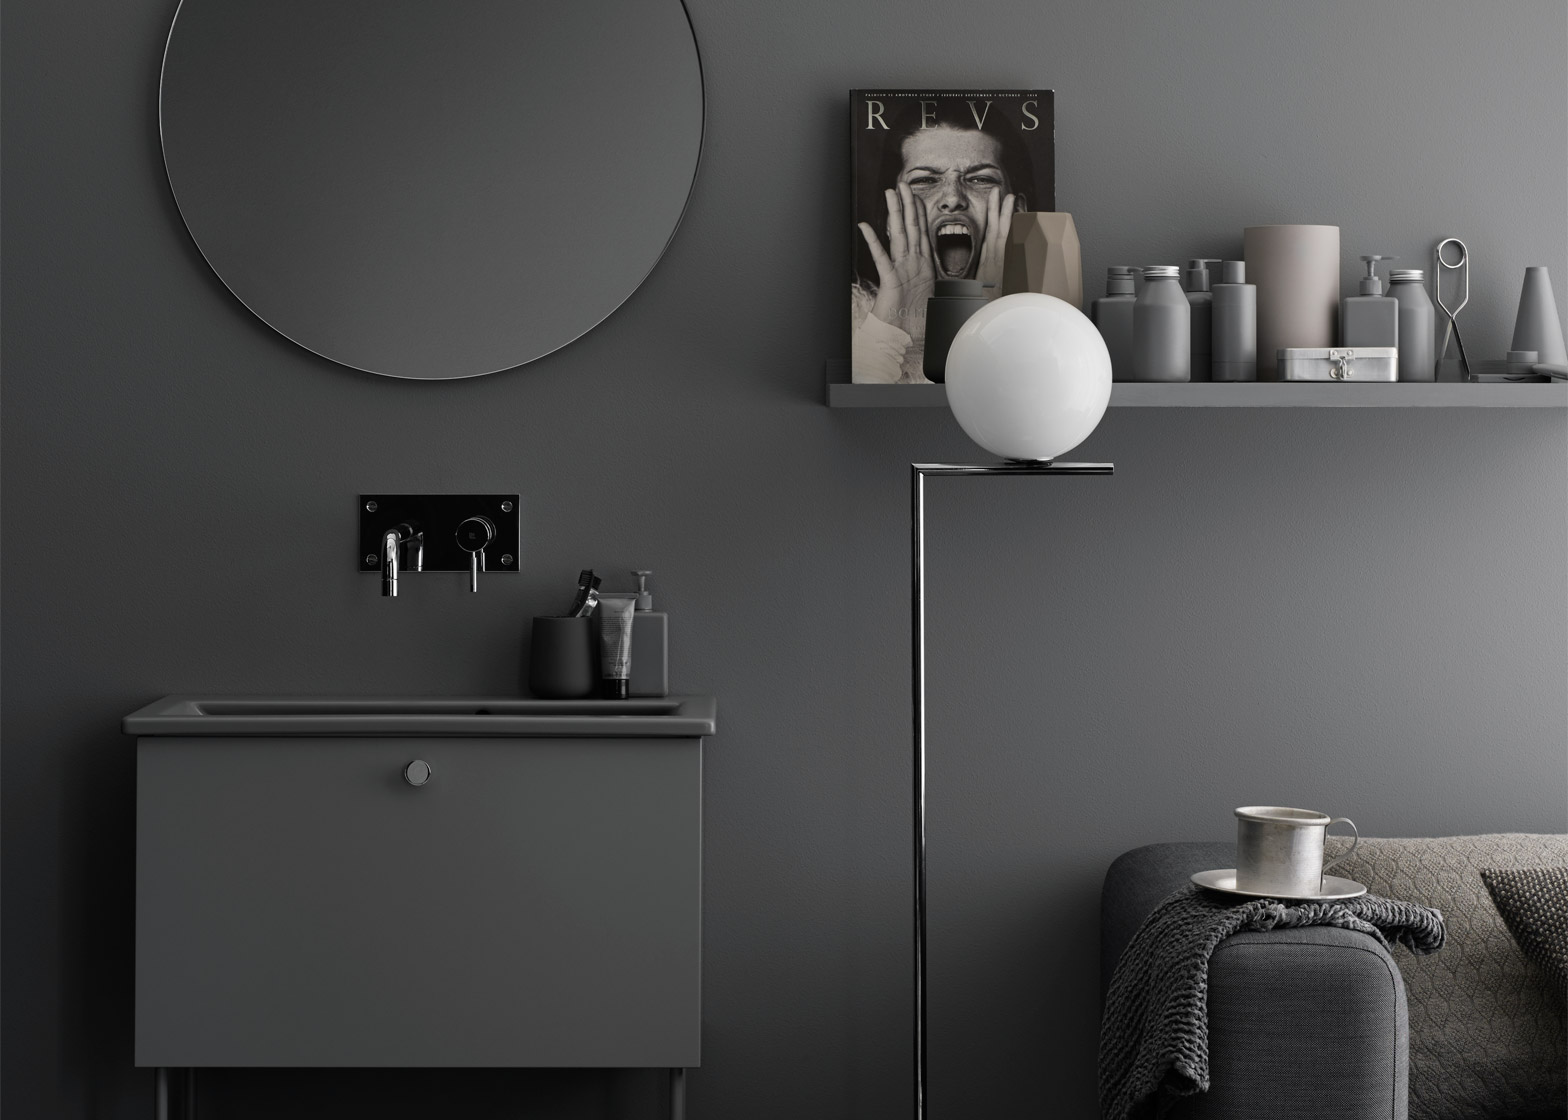 swoon-bathroom-furniture-design-stockholm-personal-style-vanity-unit-mirror-basin_dezeen_1568_10